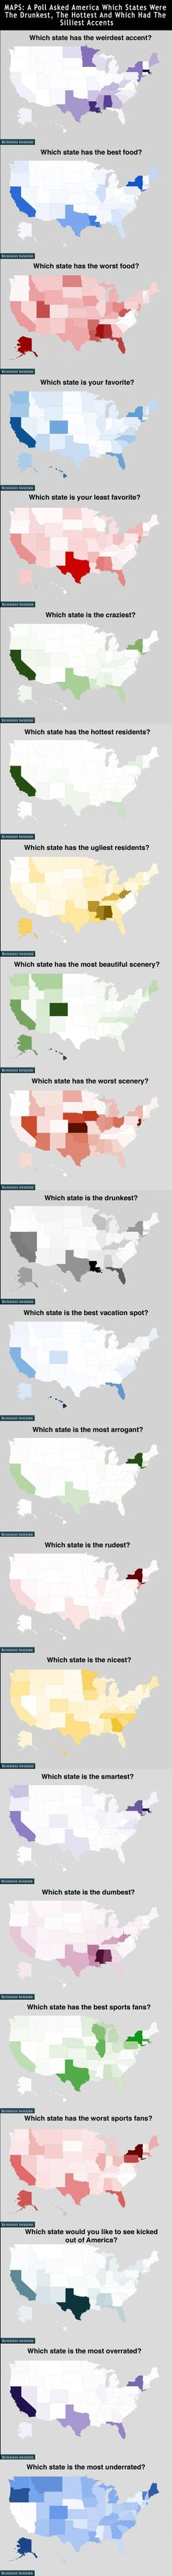 How Americans Feel About The States